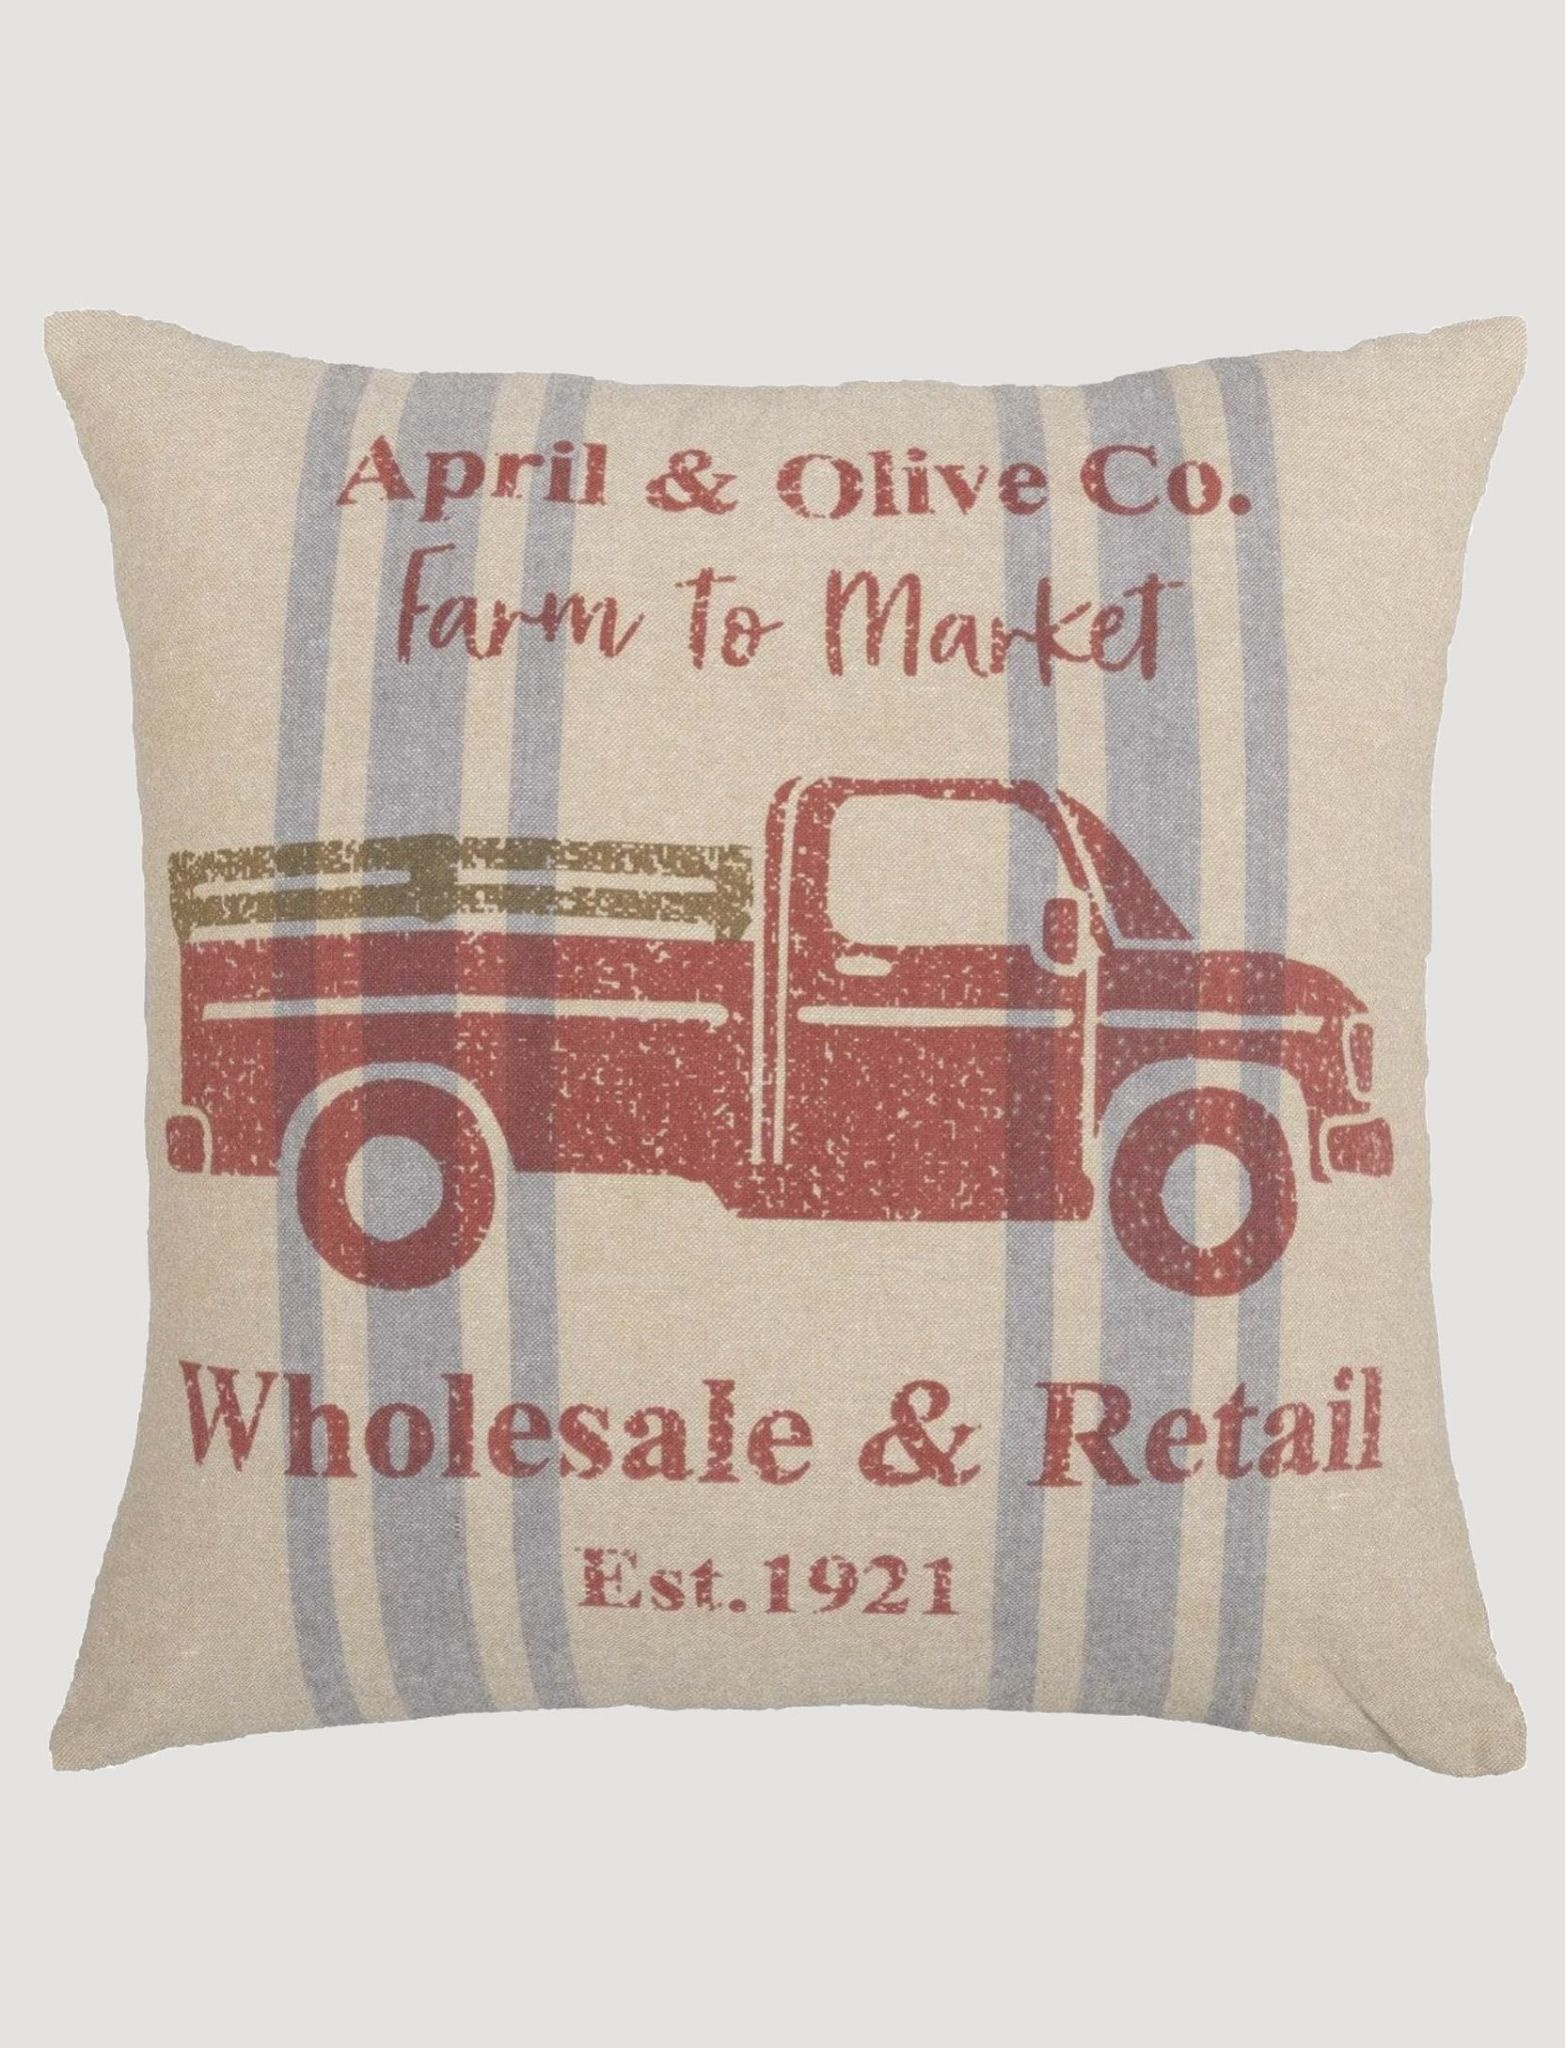 VHC Brands Farmer's Market Delivery Truck Pillow - 18x18